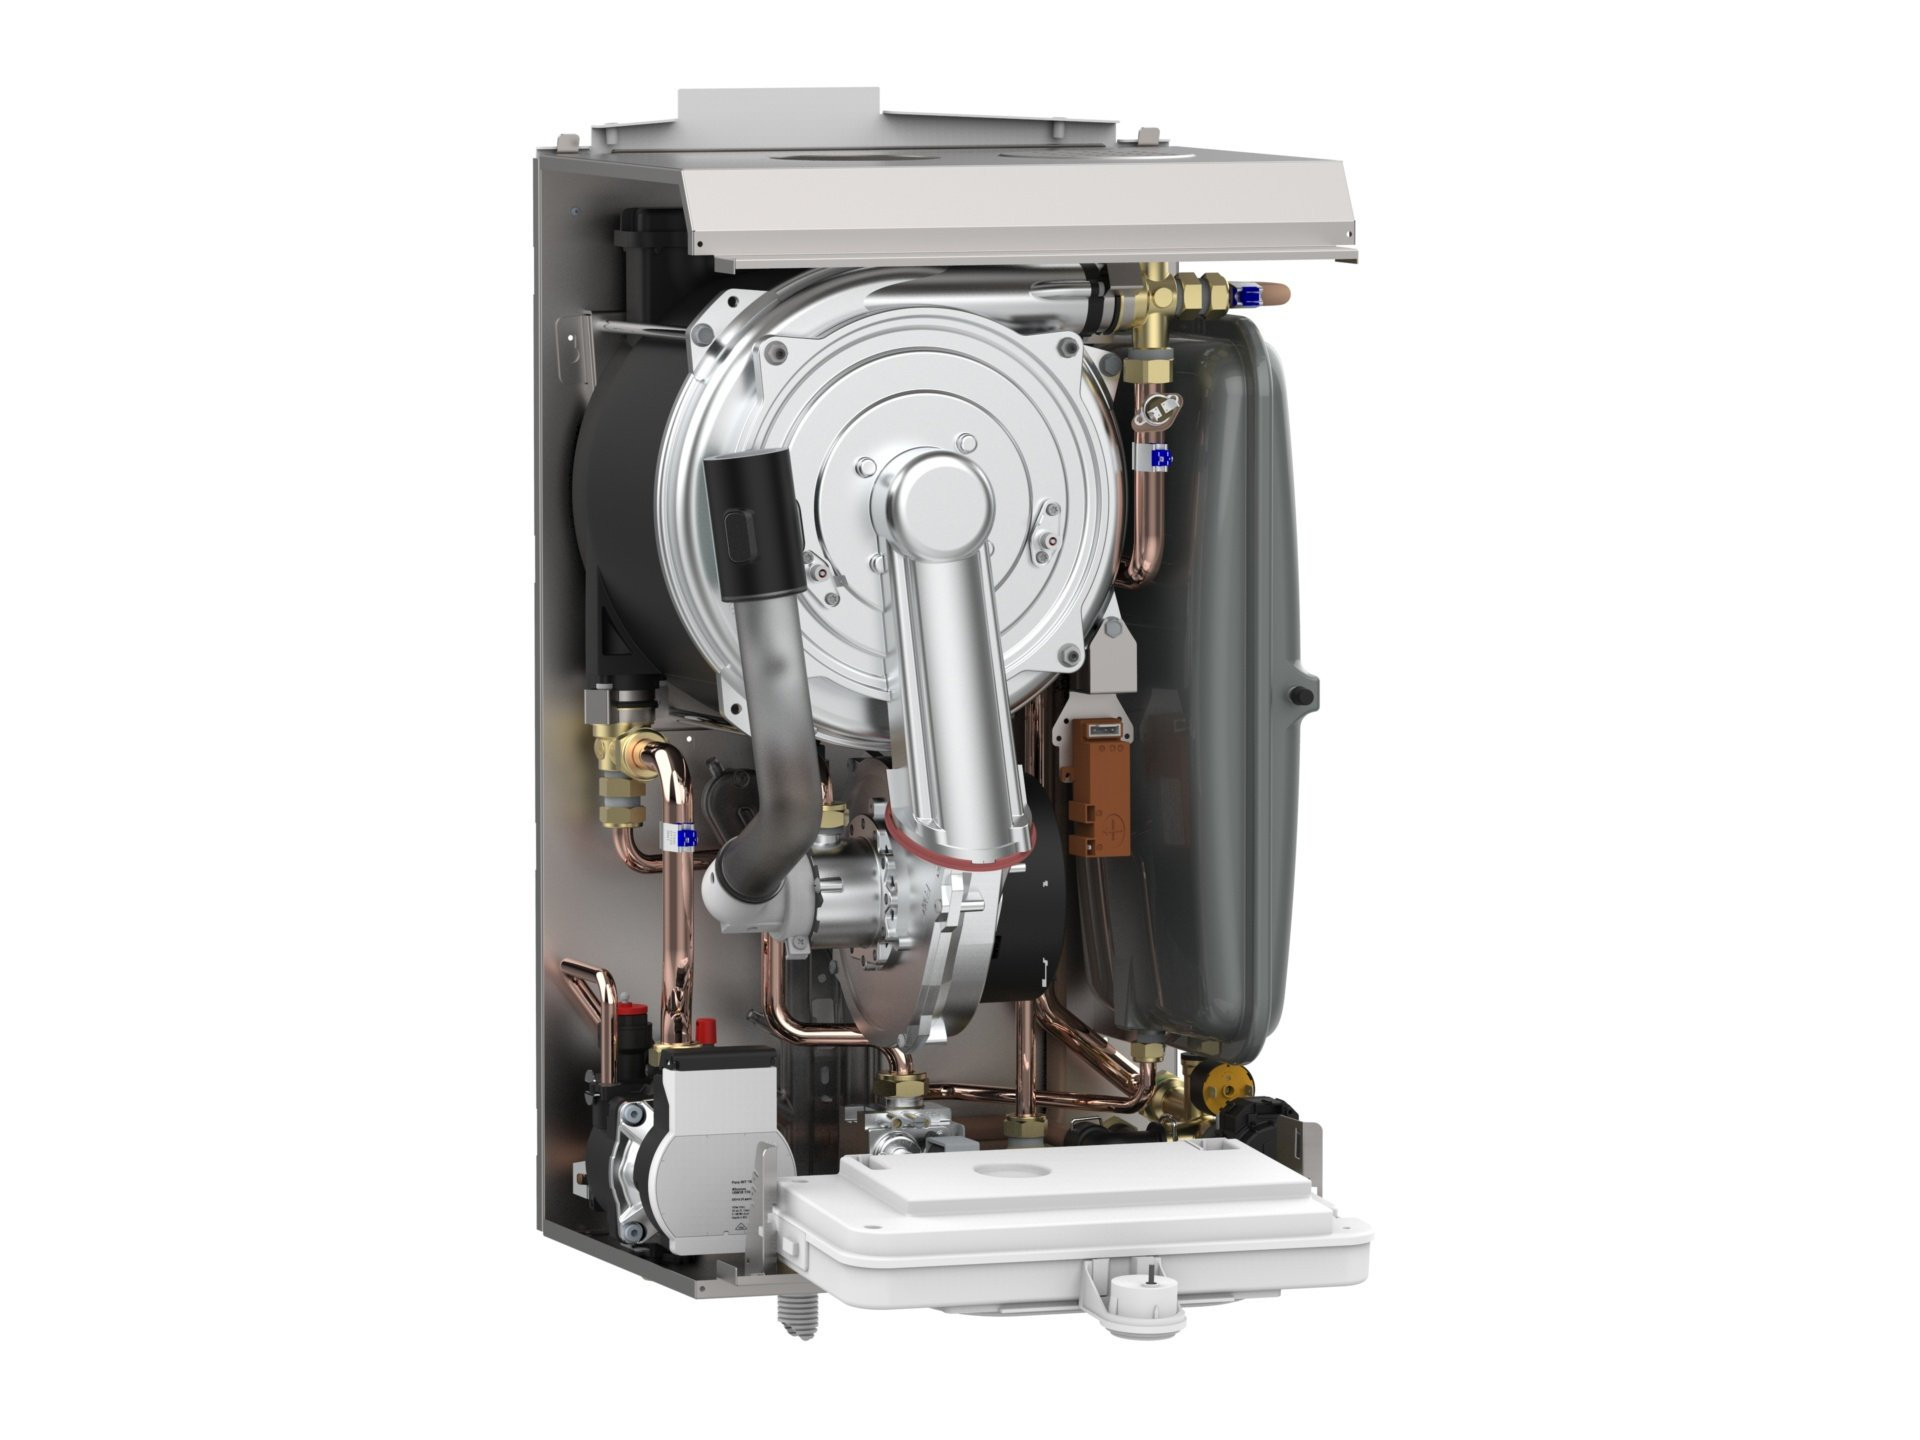 External gas fired boilers lpg or natural gas from Flexiheat UK; external gas boilers; wall hung external boiler; external combi boiler gas fired;